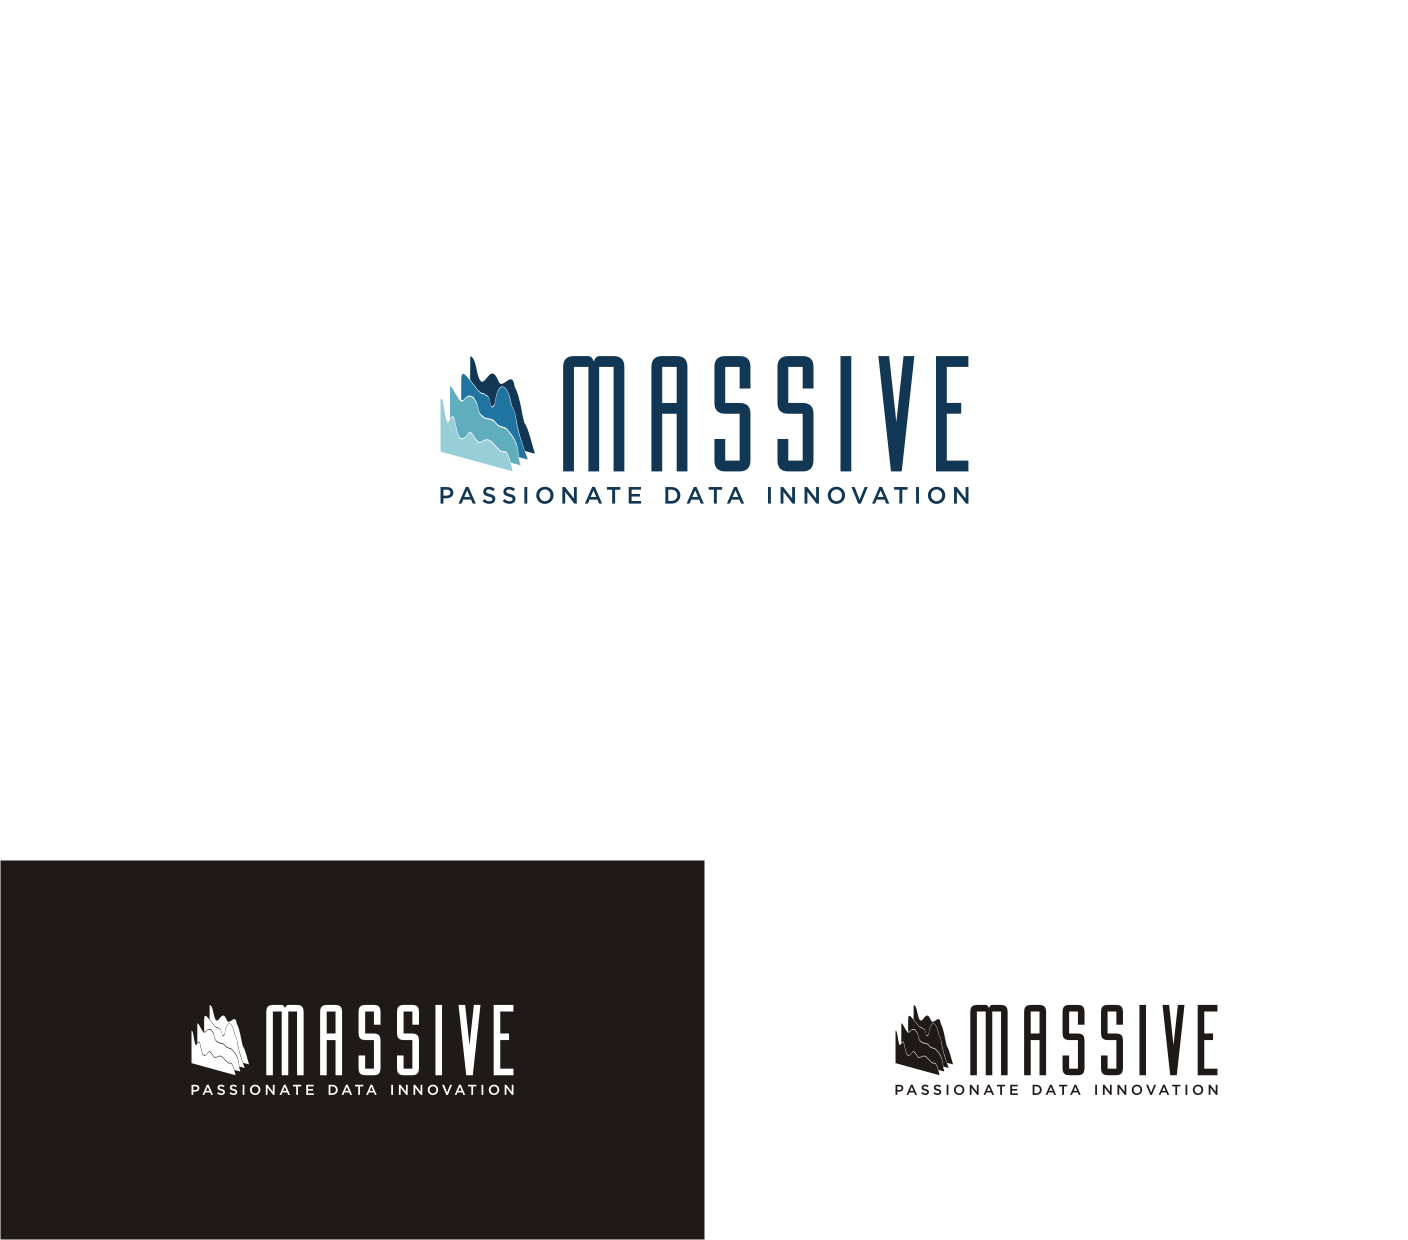 Logo Design by Sigitumarali Sigit - Entry No. 400 in the Logo Design Contest MASSIVE LOGO.